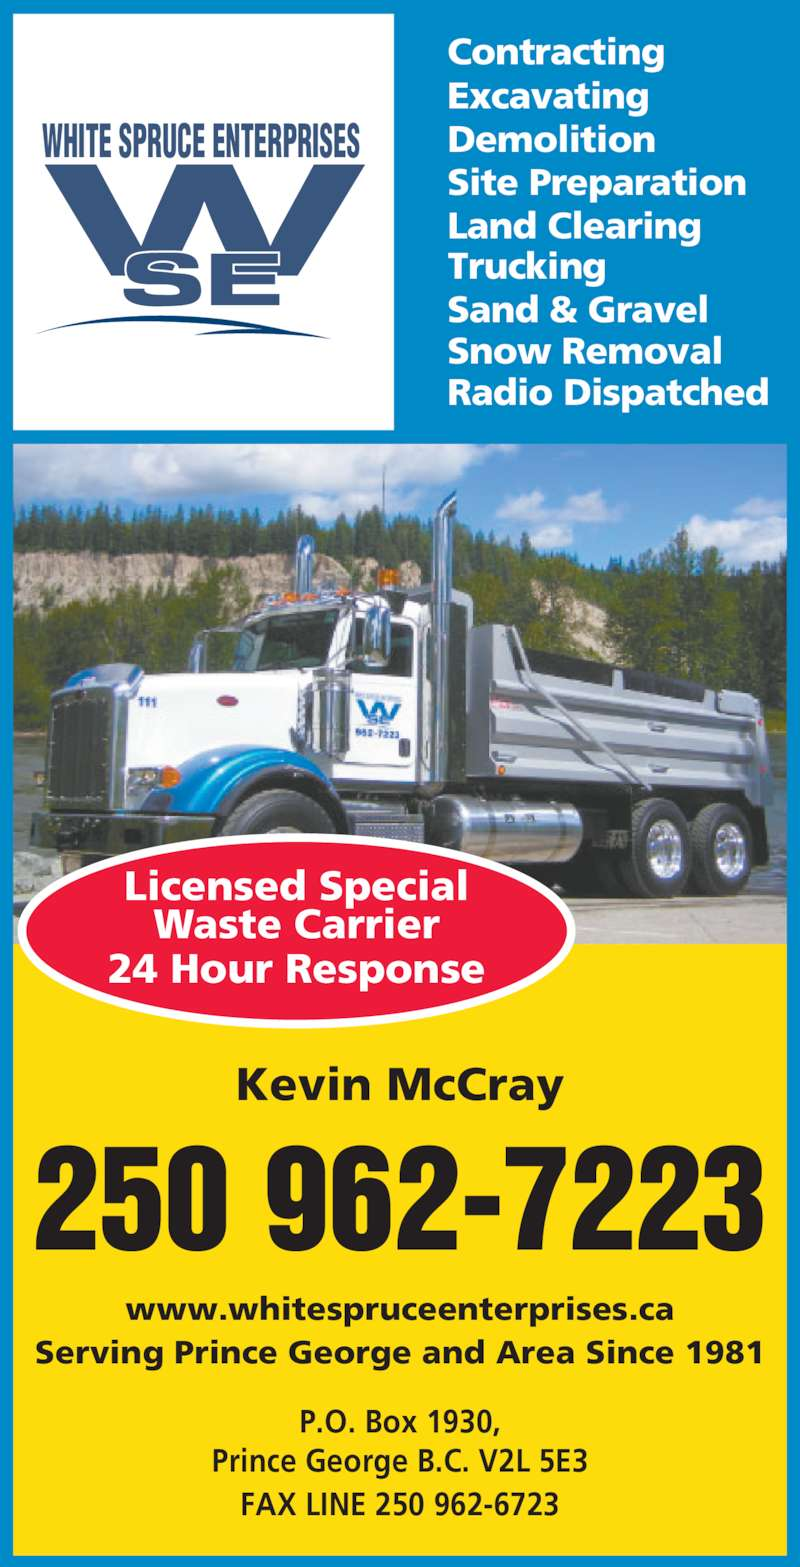 White Spruce Enterprises (1981) Ltd (2509627223) - Display Ad - Trucking Sand & Gravel Snow Removal Radio Dispatched Site Preparation Land Clearing Kevin McCray www.whitespruceenterprises.ca Serving Prince George and Area Since 1981 Licensed Special Waste Carrier 24 Hour Response P.O. Box 1930, Kevin McCray www.whitespruceenterprises.ca FAX LINE 250 962-6723 250 962-7223 WHITE SPRUCE ENTERPRISES Contracting Excavating Demolition Trucking Sand & Gravel Snow Removal Radio Dispatched Site Preparation Land Clearing Prince George B.C. V2L 5E3 Serving Prince George and Area Since 1981 Licensed Special Waste Carrier 24 Hour Response P.O. Box 1930, Prince George B.C. V2L 5E3 FAX LINE 250 962-6723 250 962-7223 WHITE SPRUCE ENTERPRISES Contracting Excavating Demolition